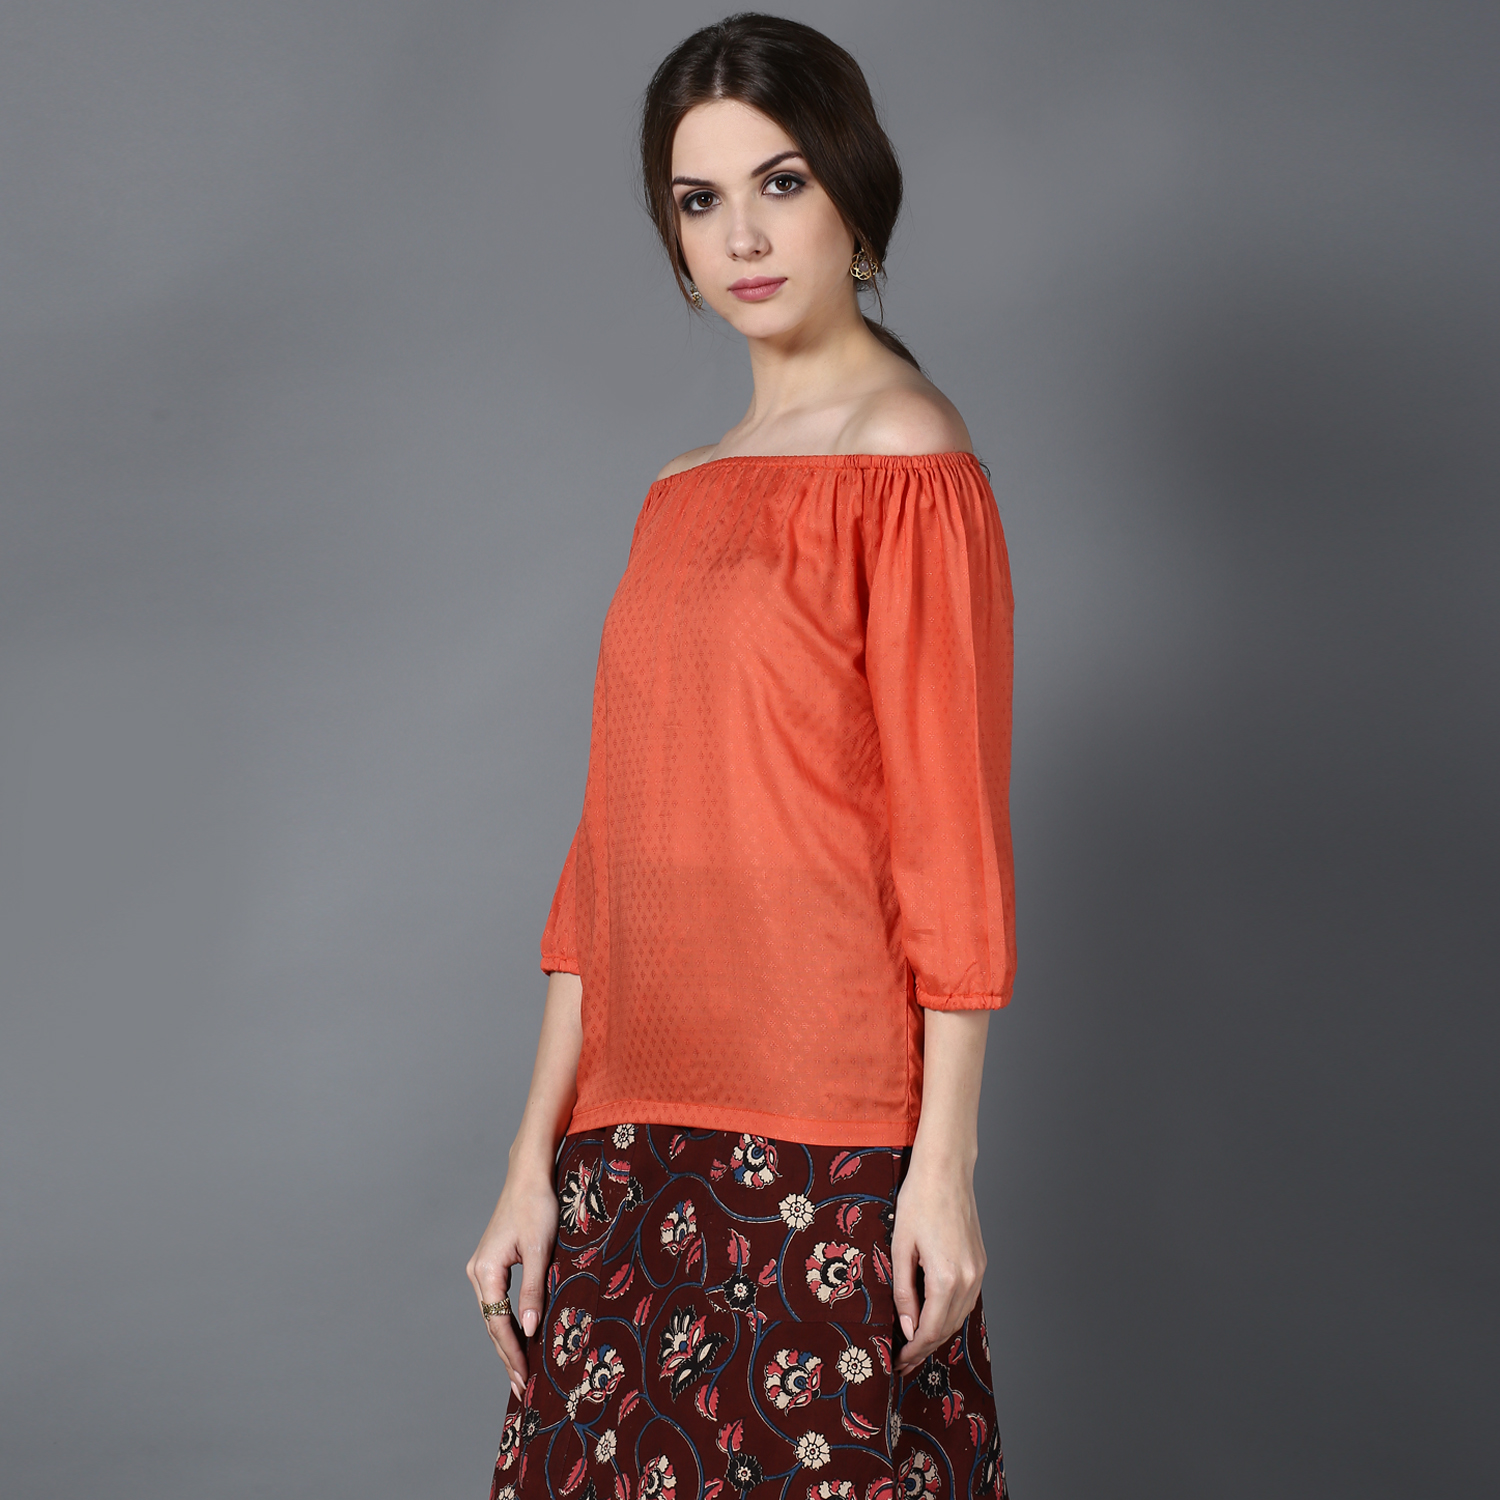 Peach Modal off-shoulder top (INDI-430)